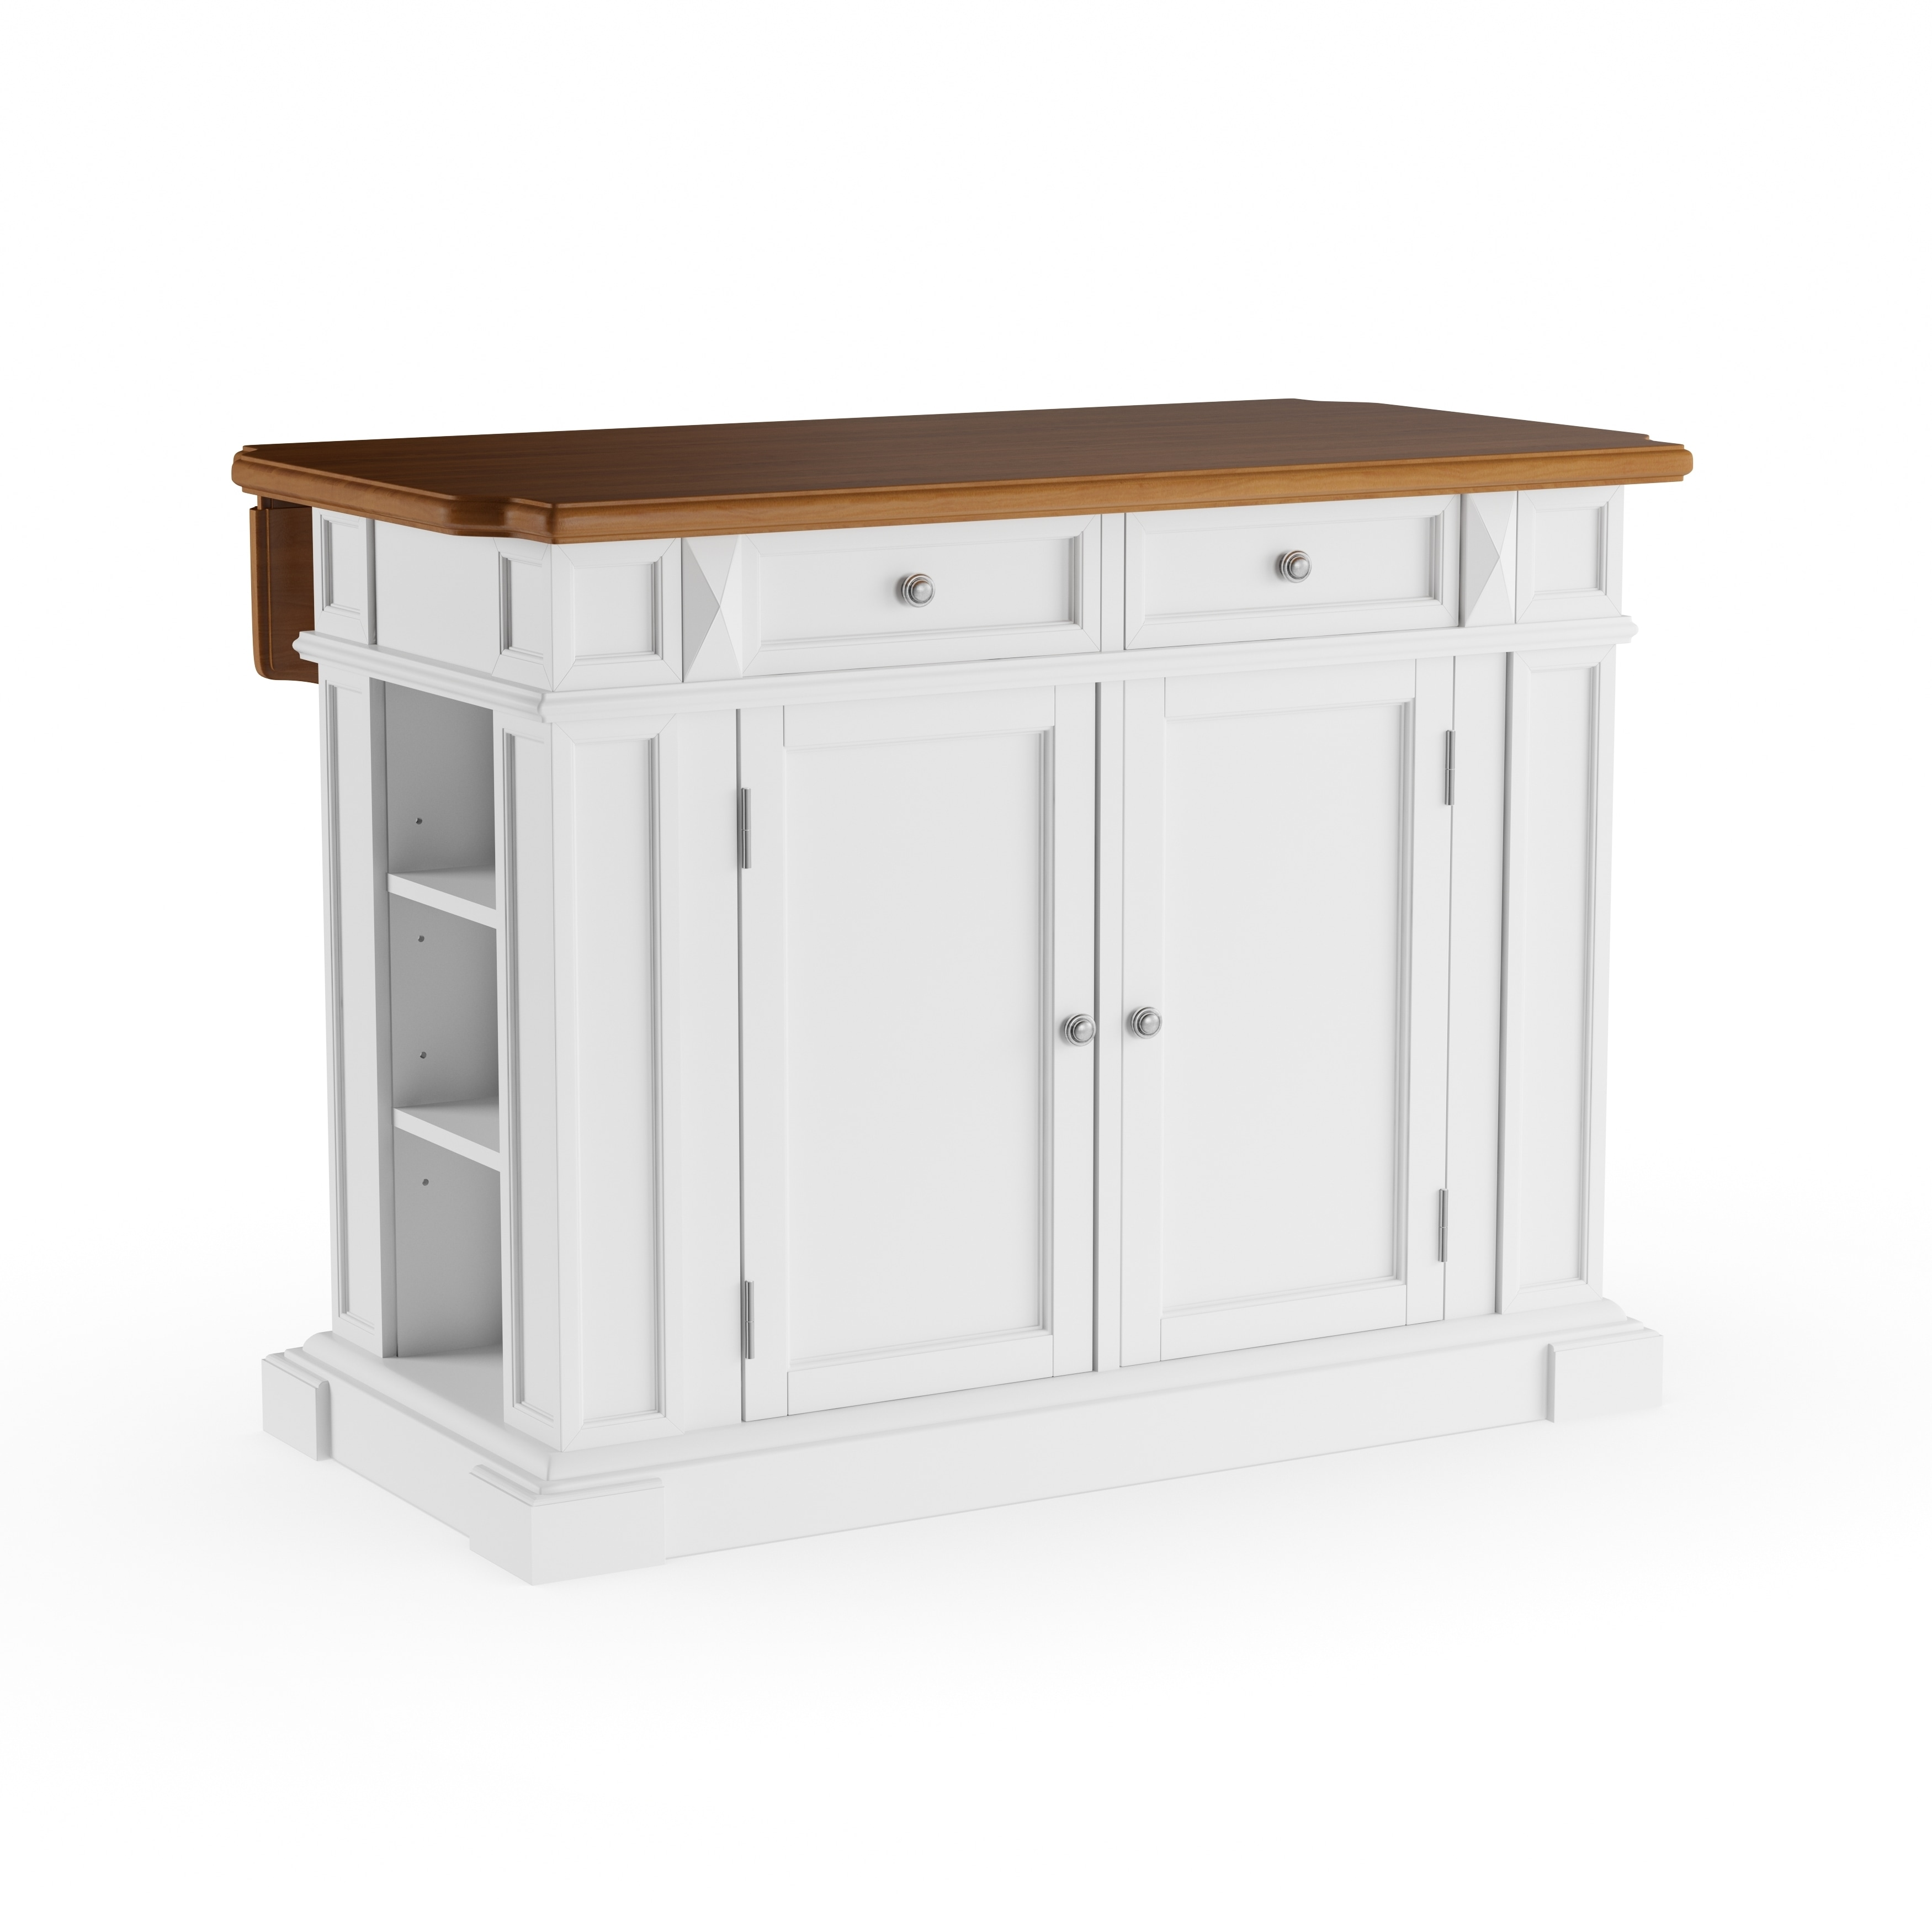 Shop maison rouge savary white distressed oak kitchen island free shipping today overstock com 20882263